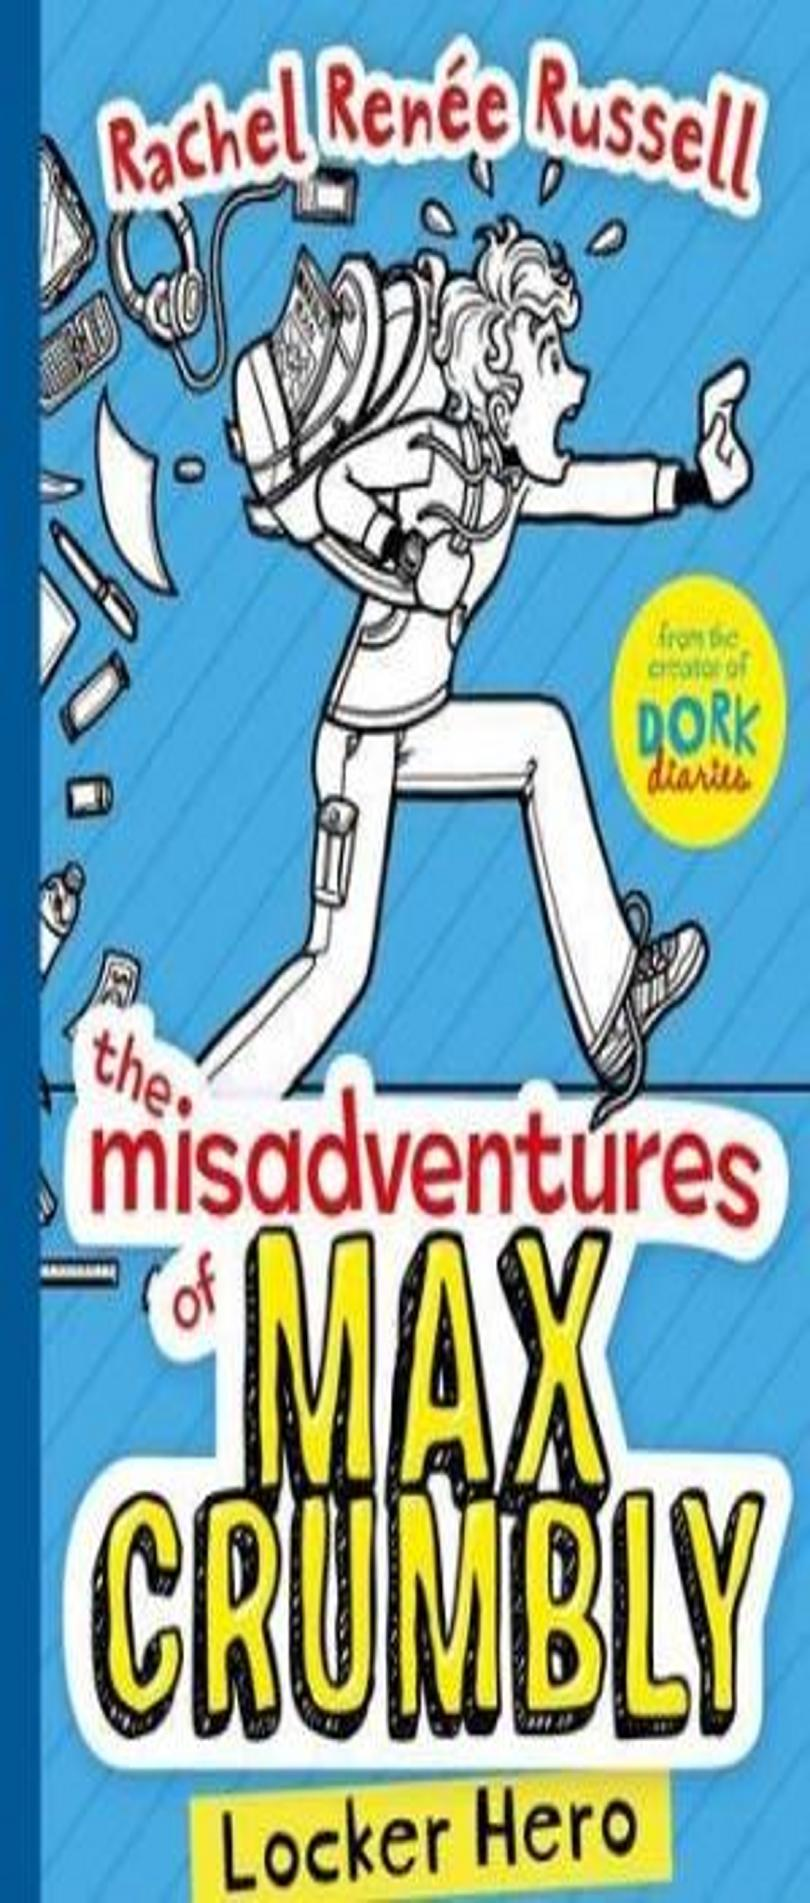 LOCKER HERO - The Misadventures of Max Crumbly 1